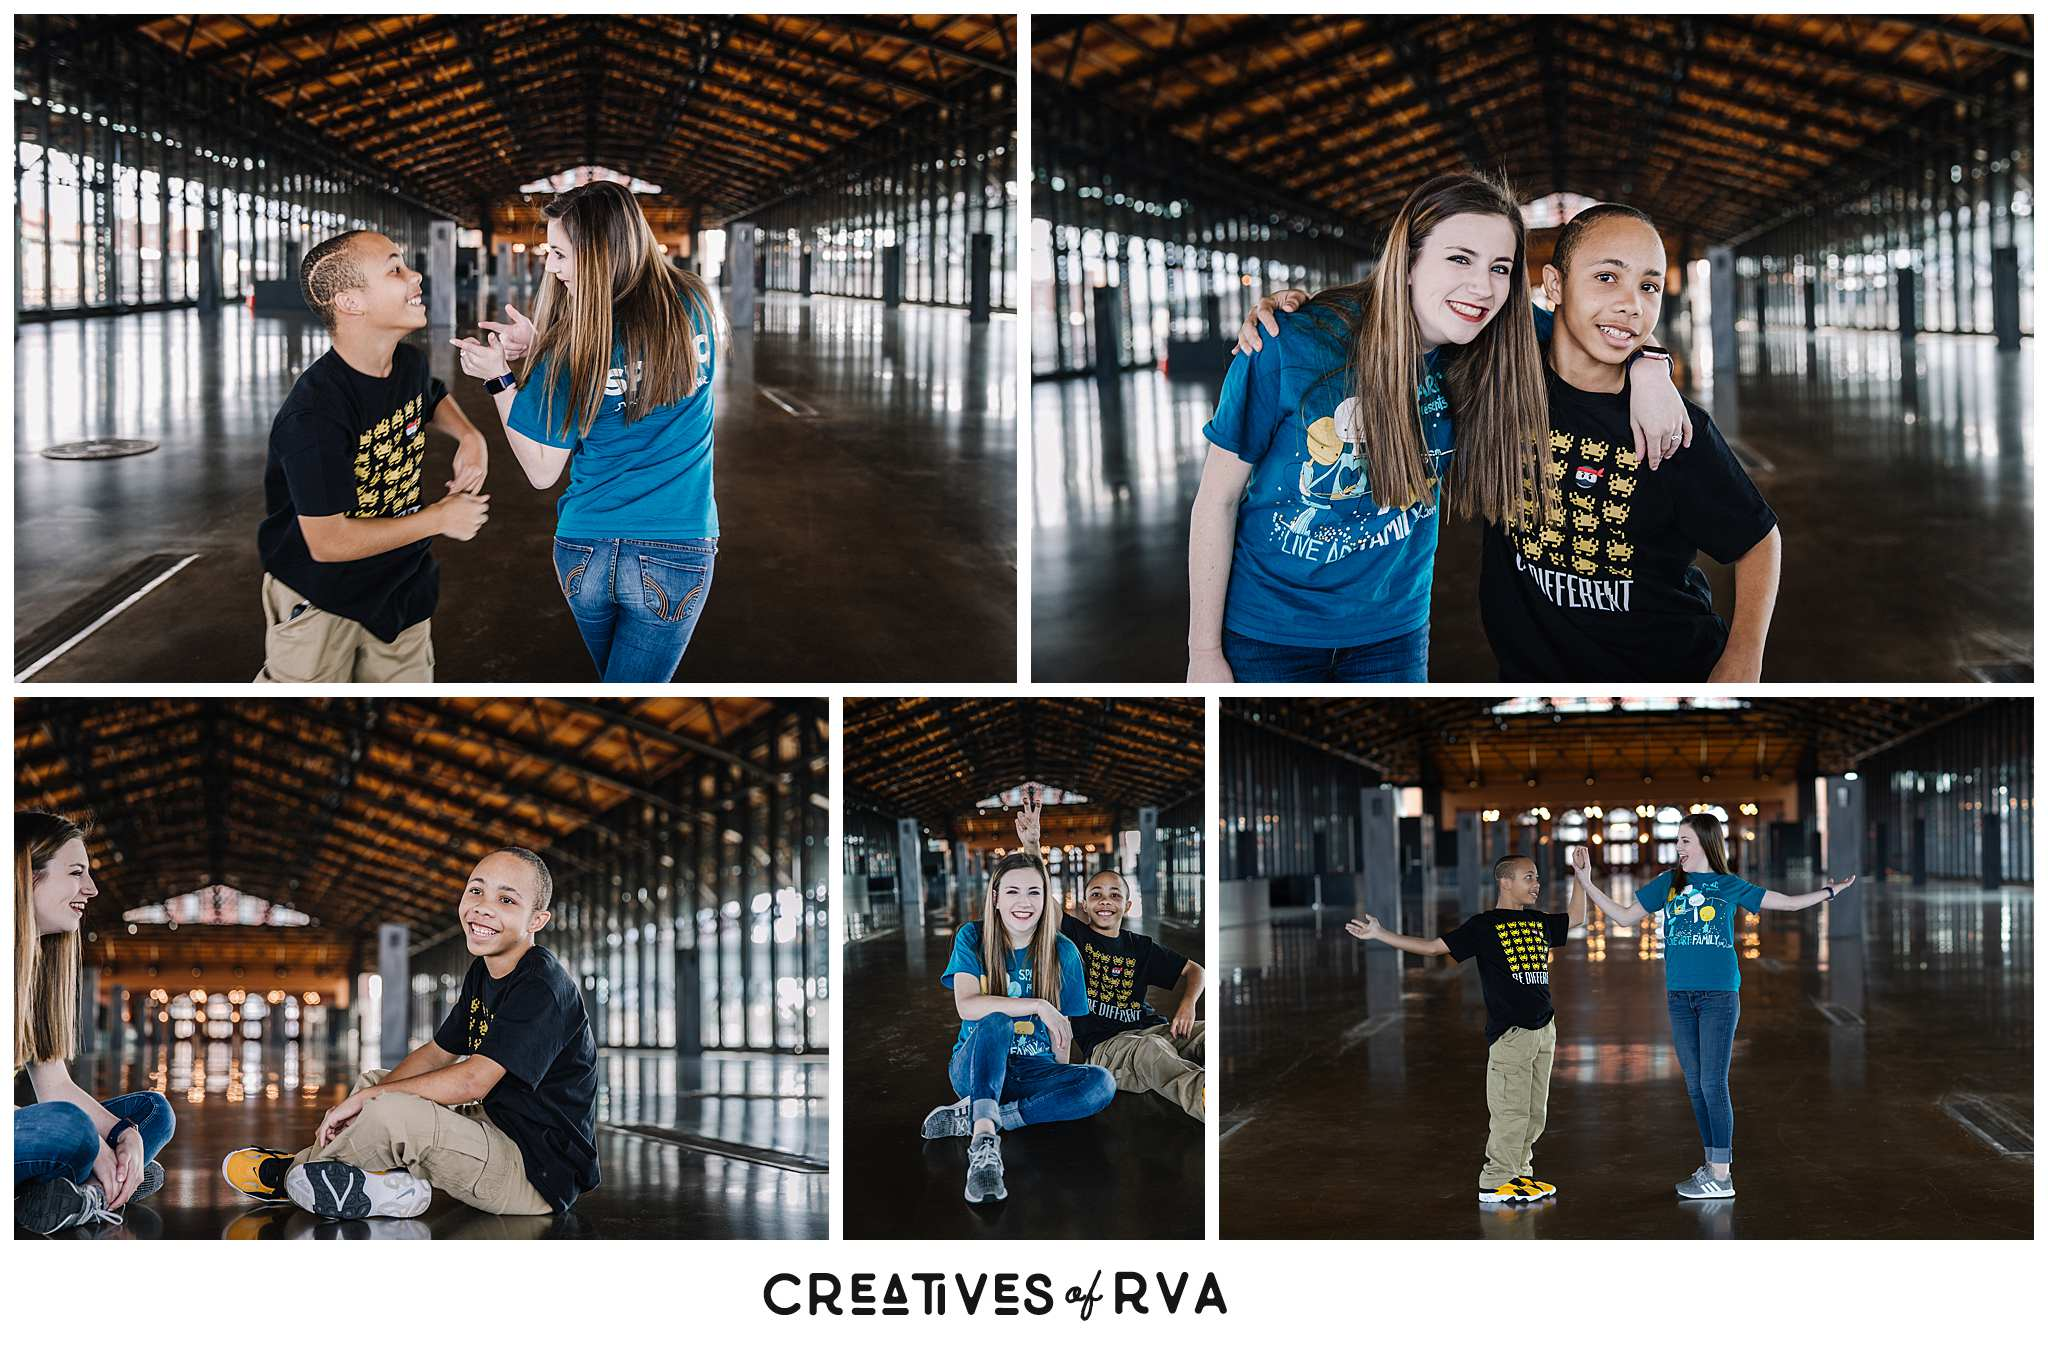 Main-Street-Station-Creatives-of-RVA-Pictures-LIVEART_0005.jpg